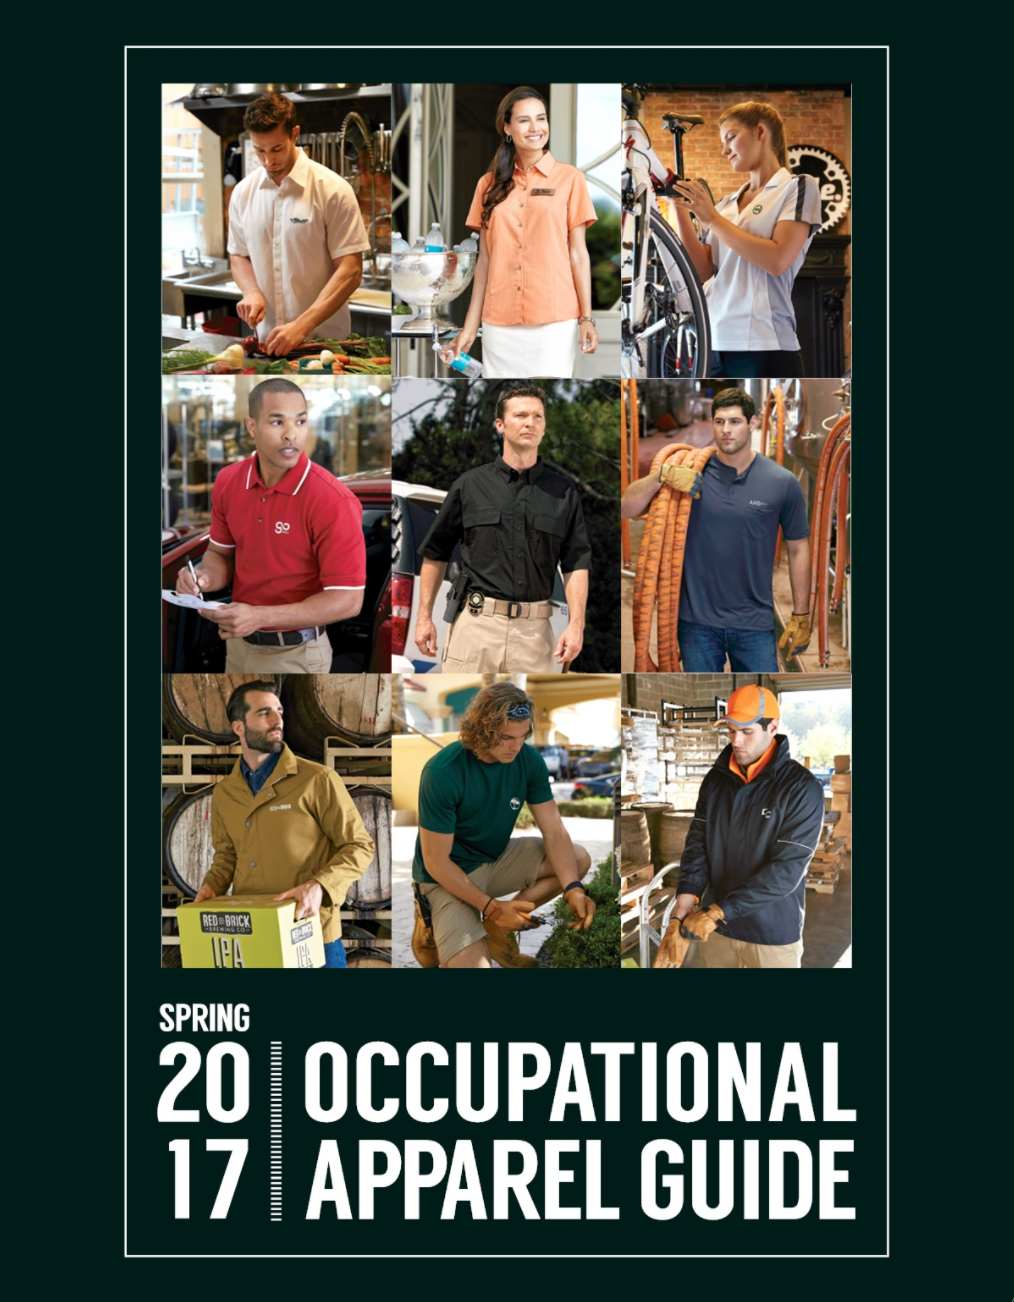 Occupational Apparel